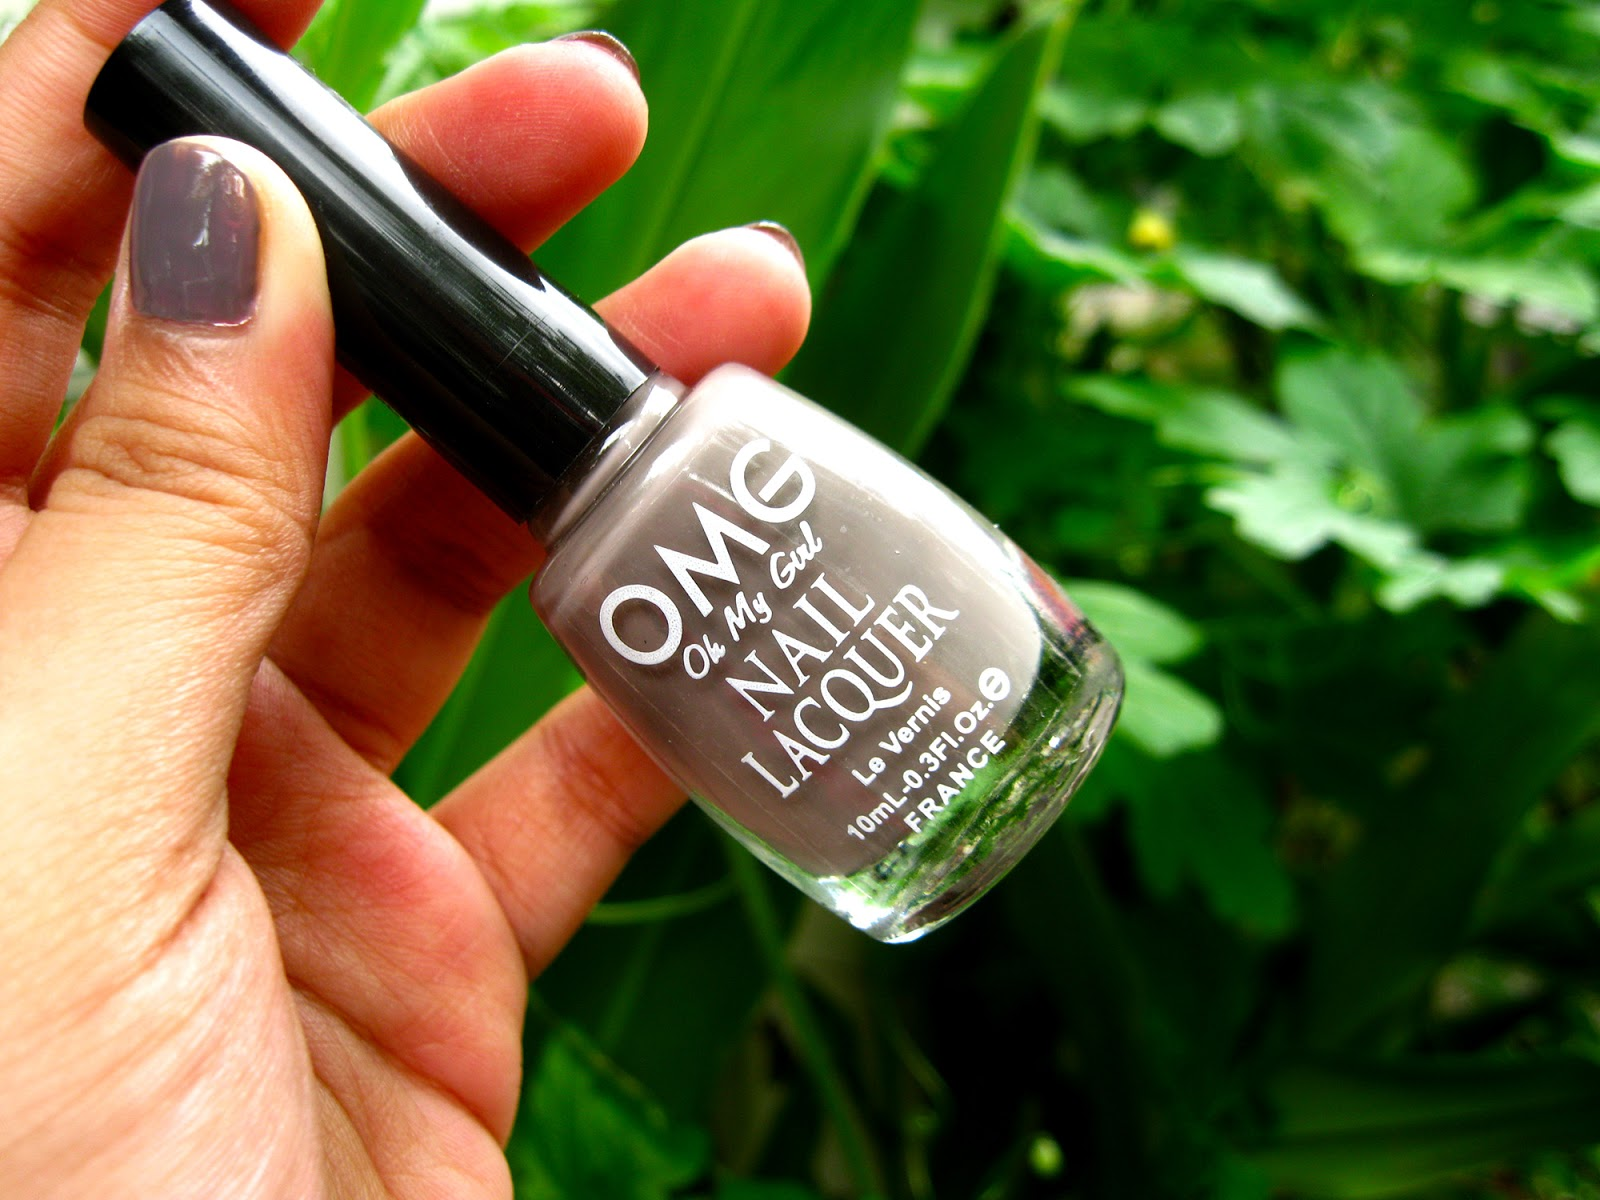 Nail of the Week: OMG Nail Lacquer in Ashley - Shash Stash